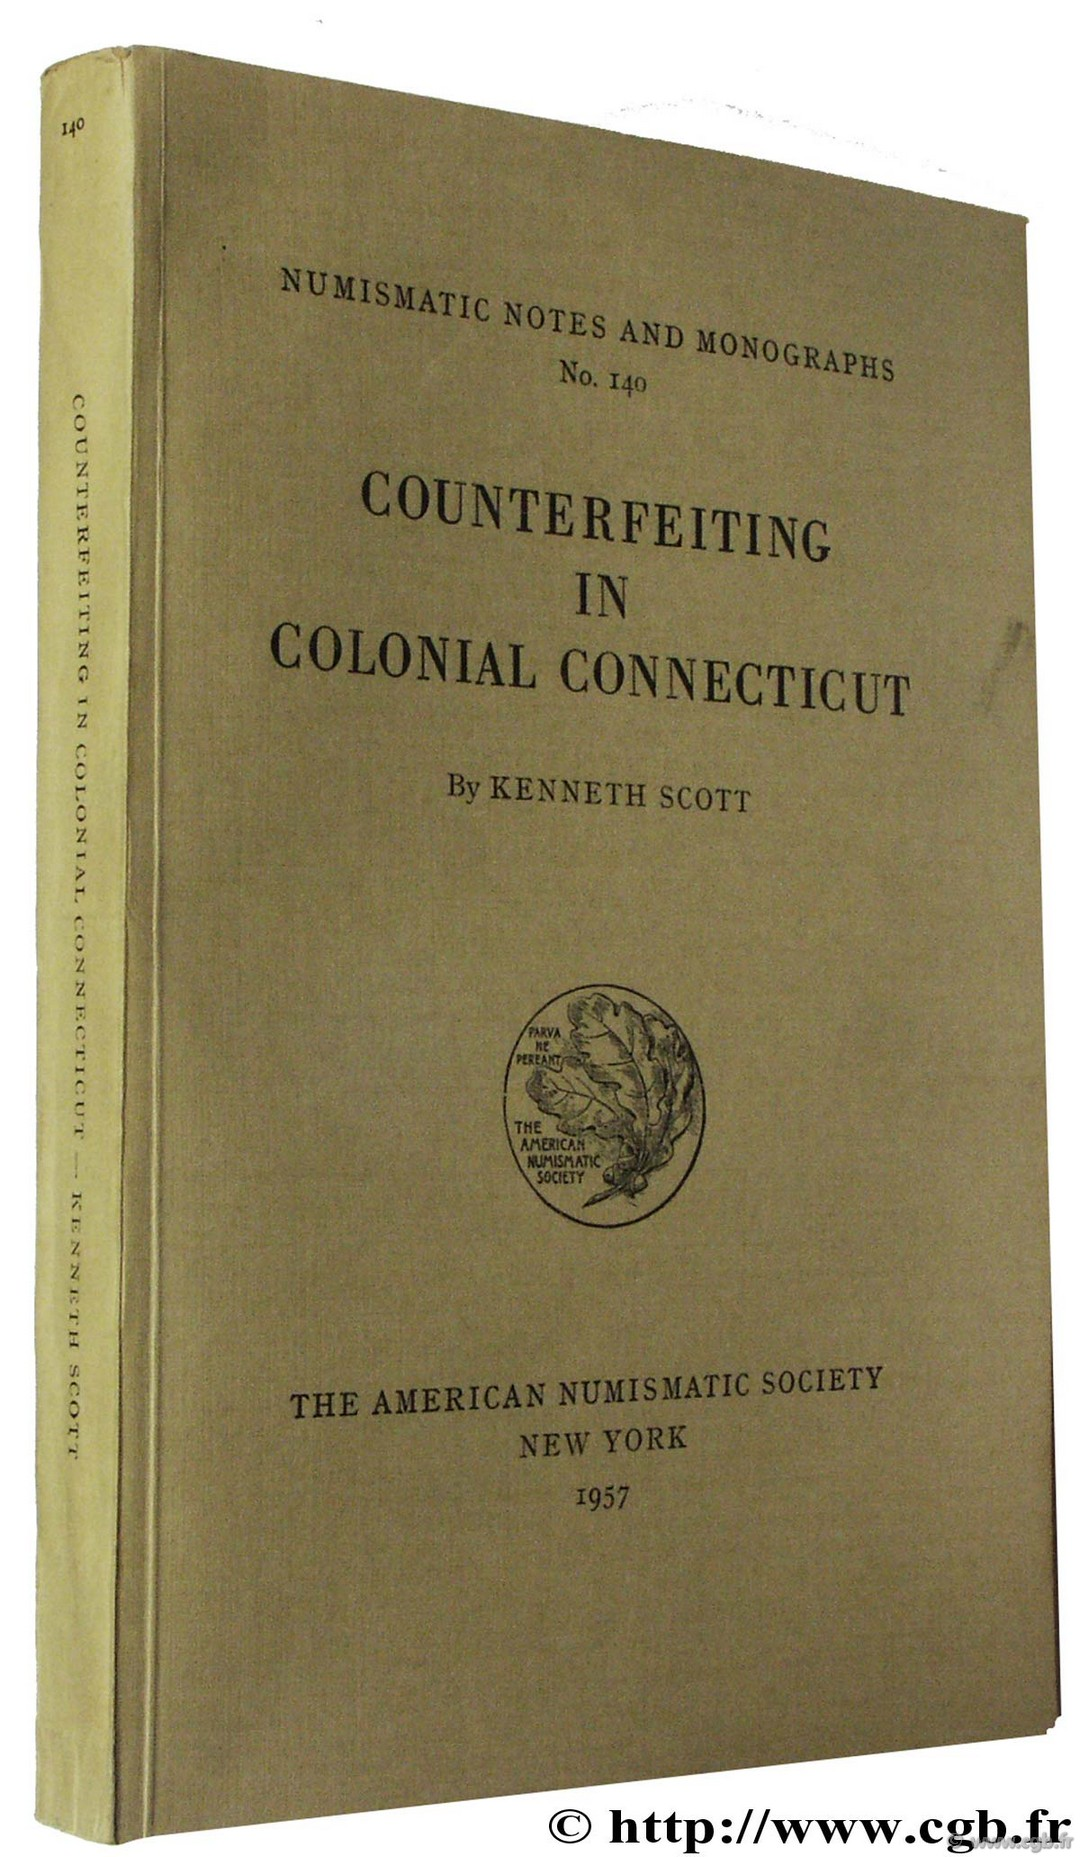 Counterfeiting in Colonial Connecticut, NNM n° 140 SCOTT K.